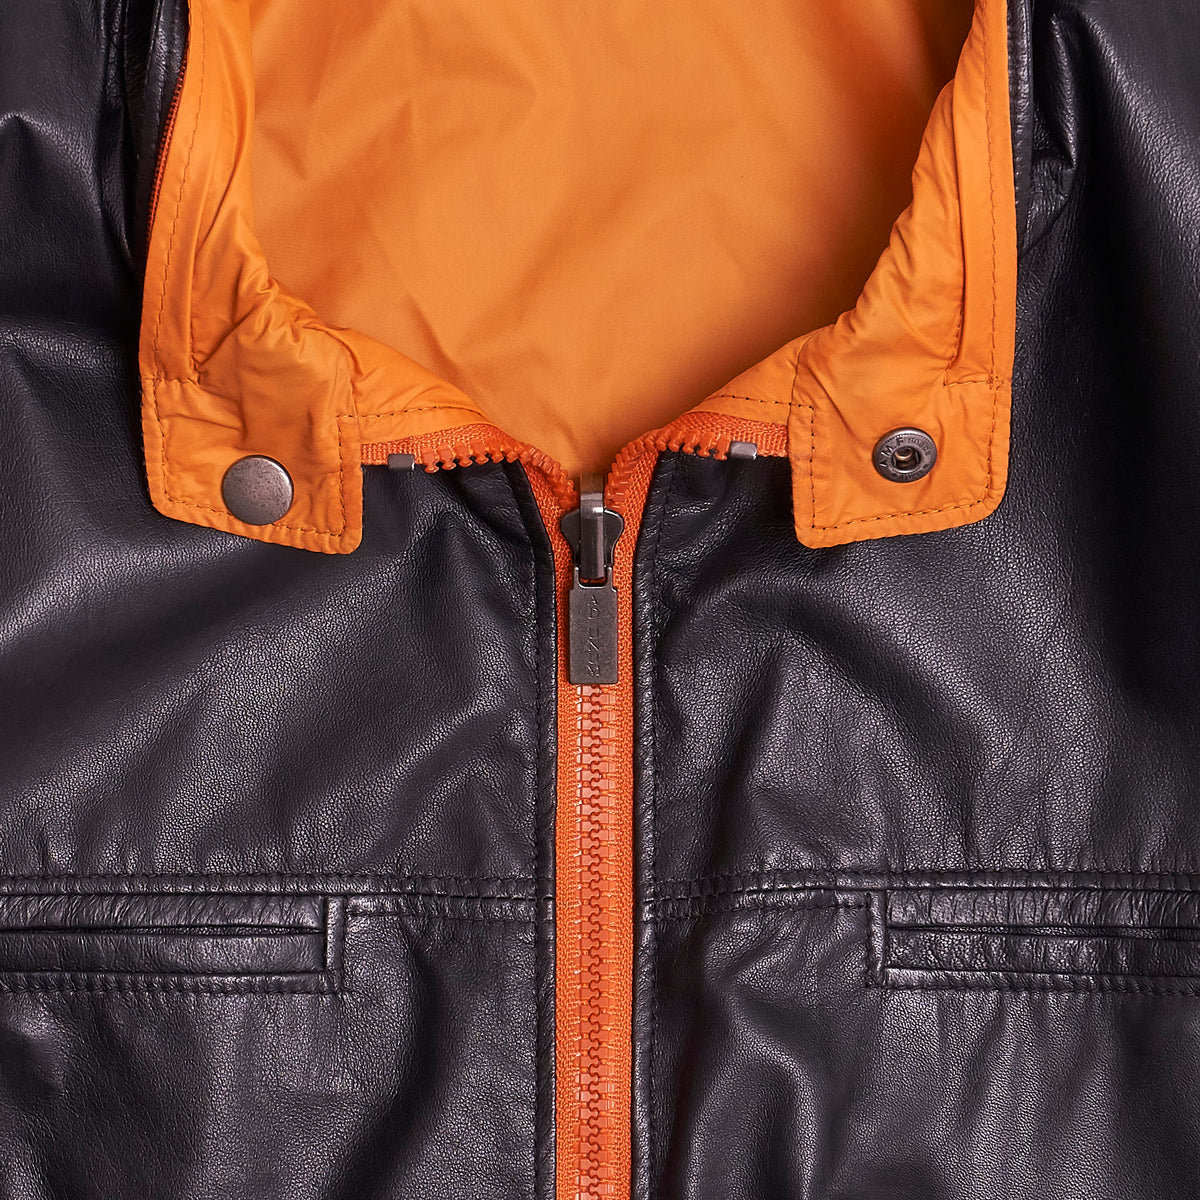 Gimo's Reversible Lightweight Leather Jacket